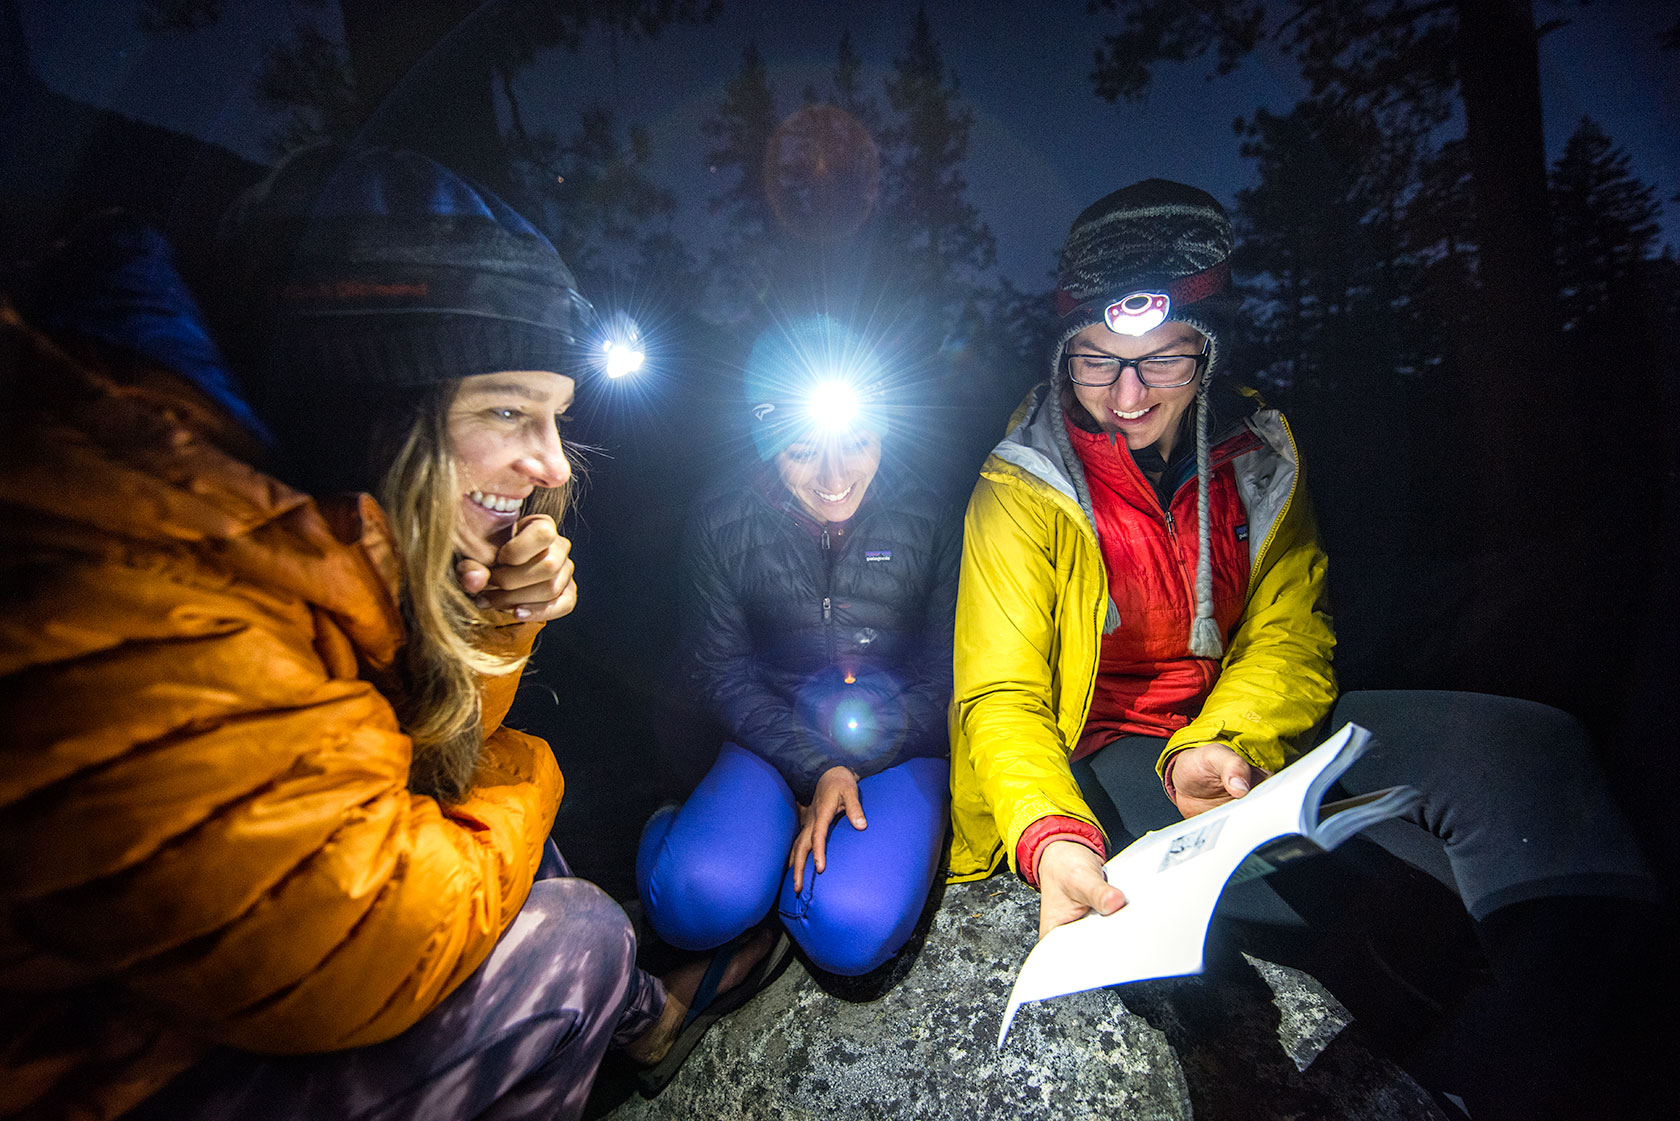 austin-trigg-patagonia-hiking-john-muir-trail-wilderness-california-adventure-outside-camp-sierra-nevada-lifestyle-mono-creek-reading-headlamp-night.jpg